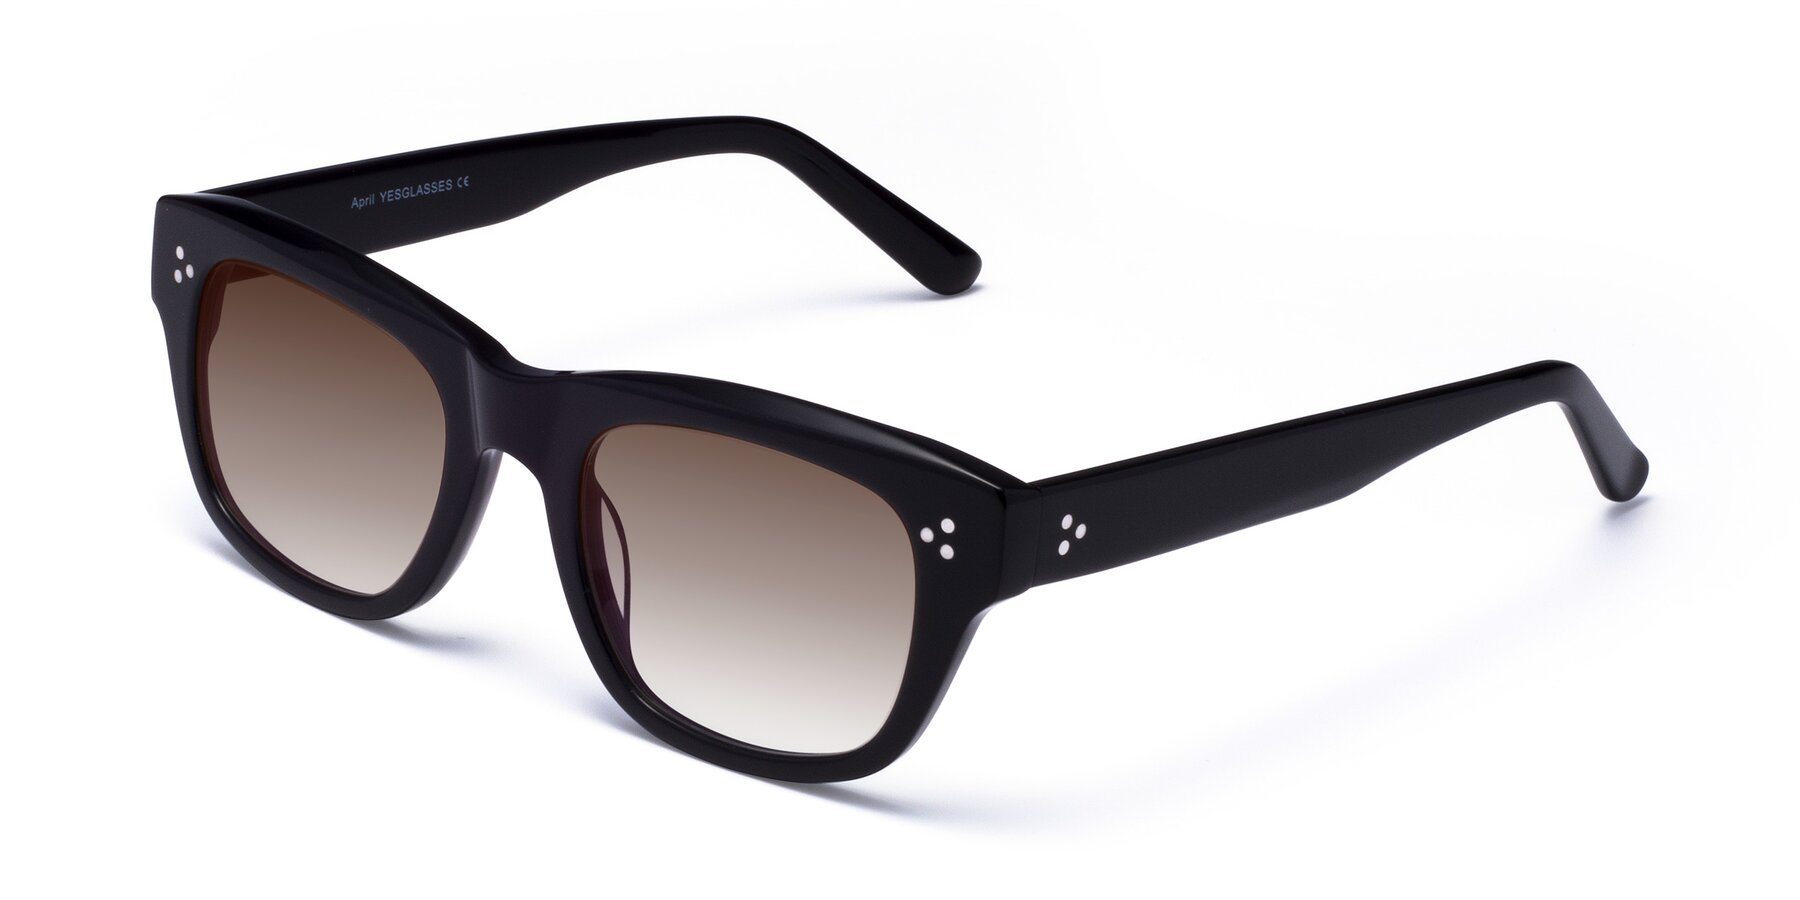 Angle of April in Black with Brown Gradient Lenses